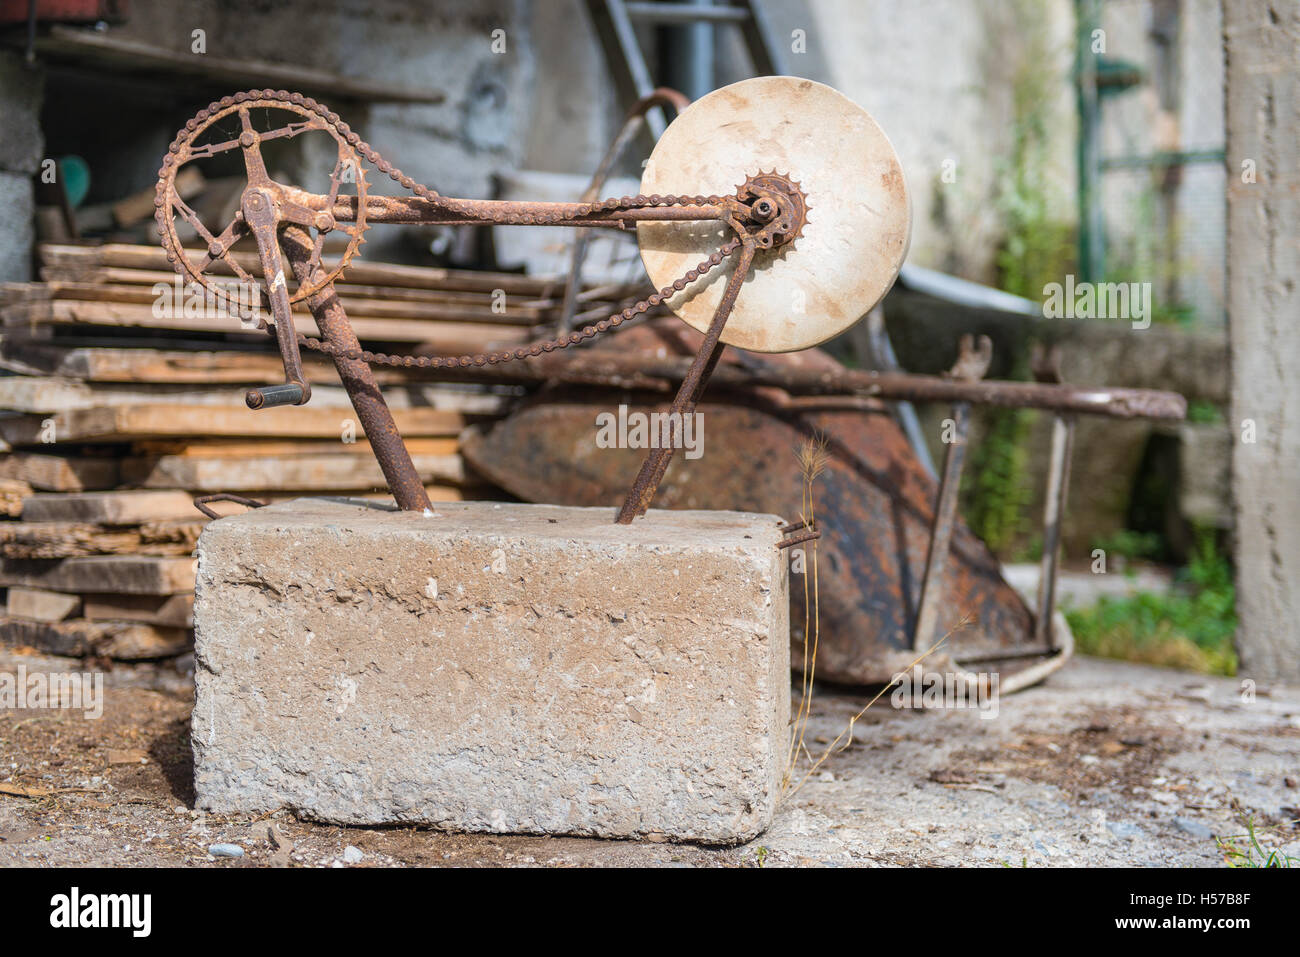 Stone to polish ancient craft rotates in an old junk shop Stock Photo